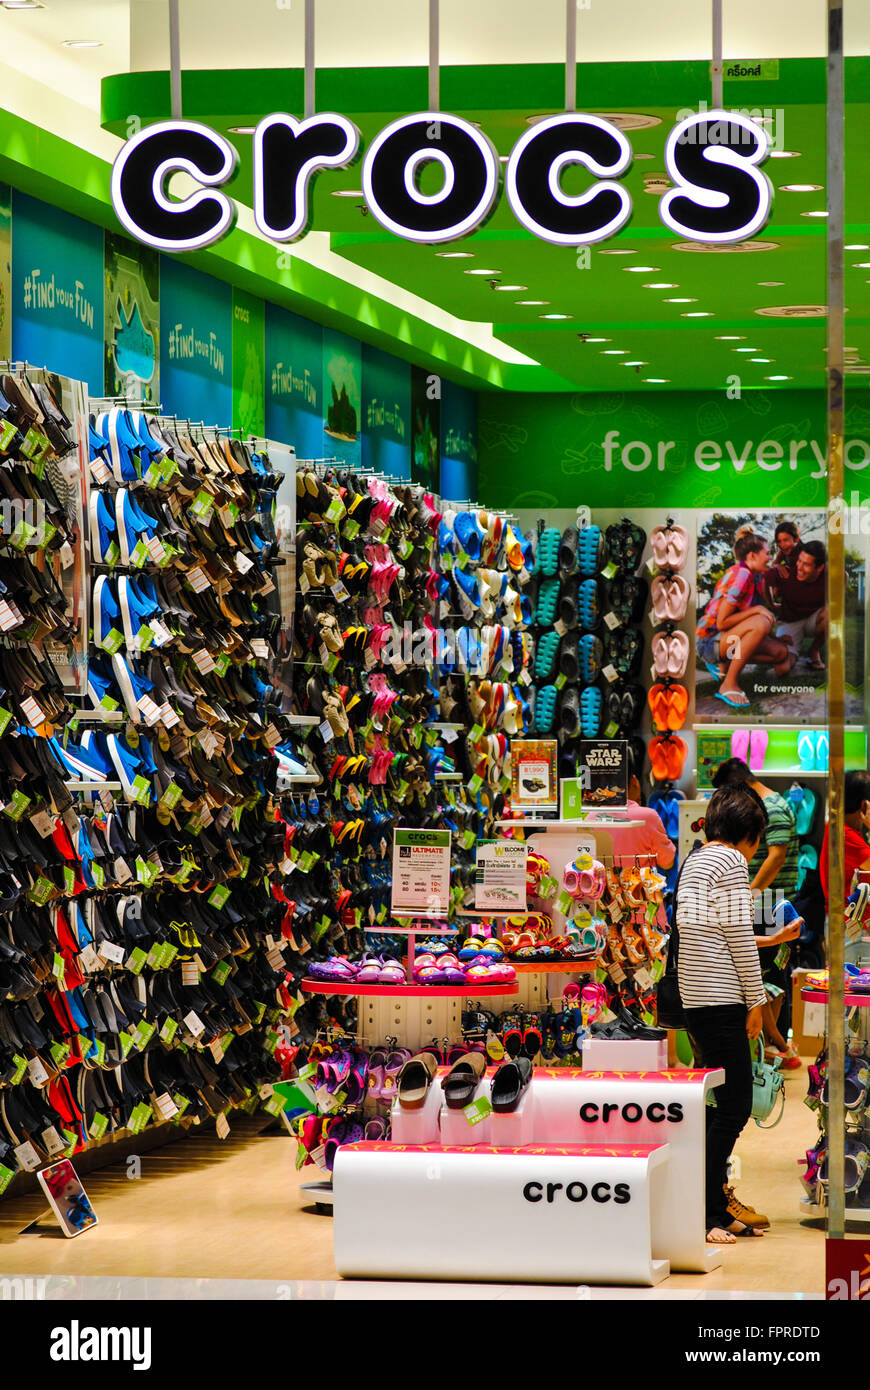 a0e0856ddcec93 Crocs shoe shop Stock Photo  100090045 - Alamy